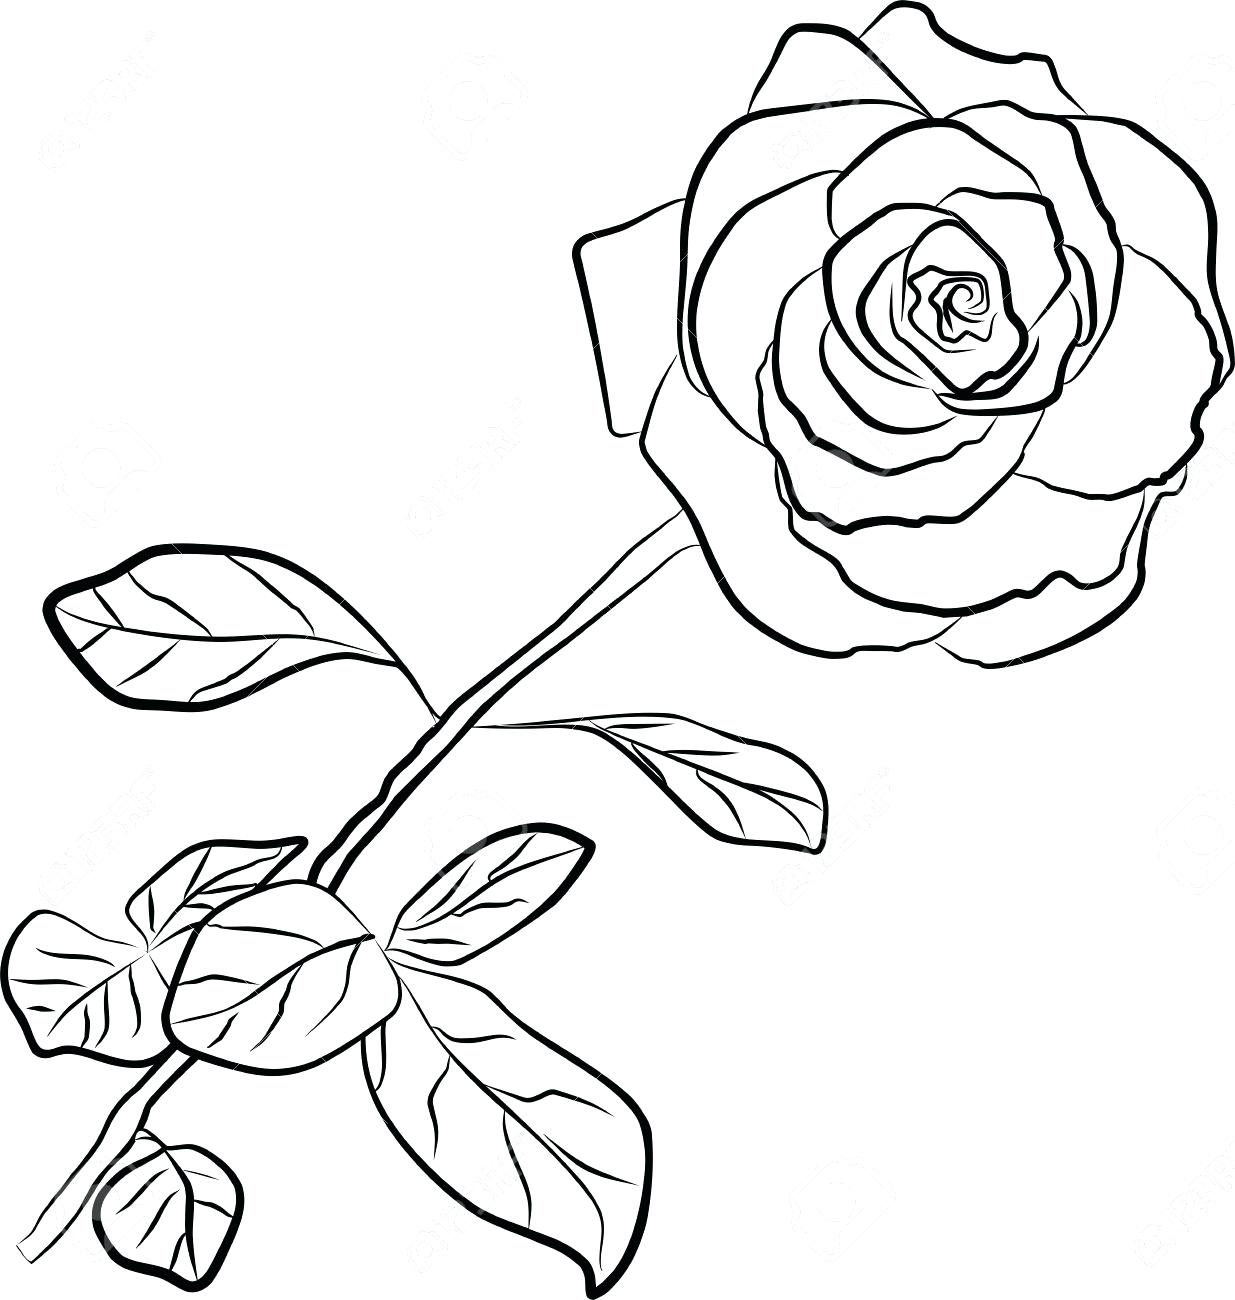 1235x1300 Coloring Appealing Flower Outlines. Flower Outline Embroidery